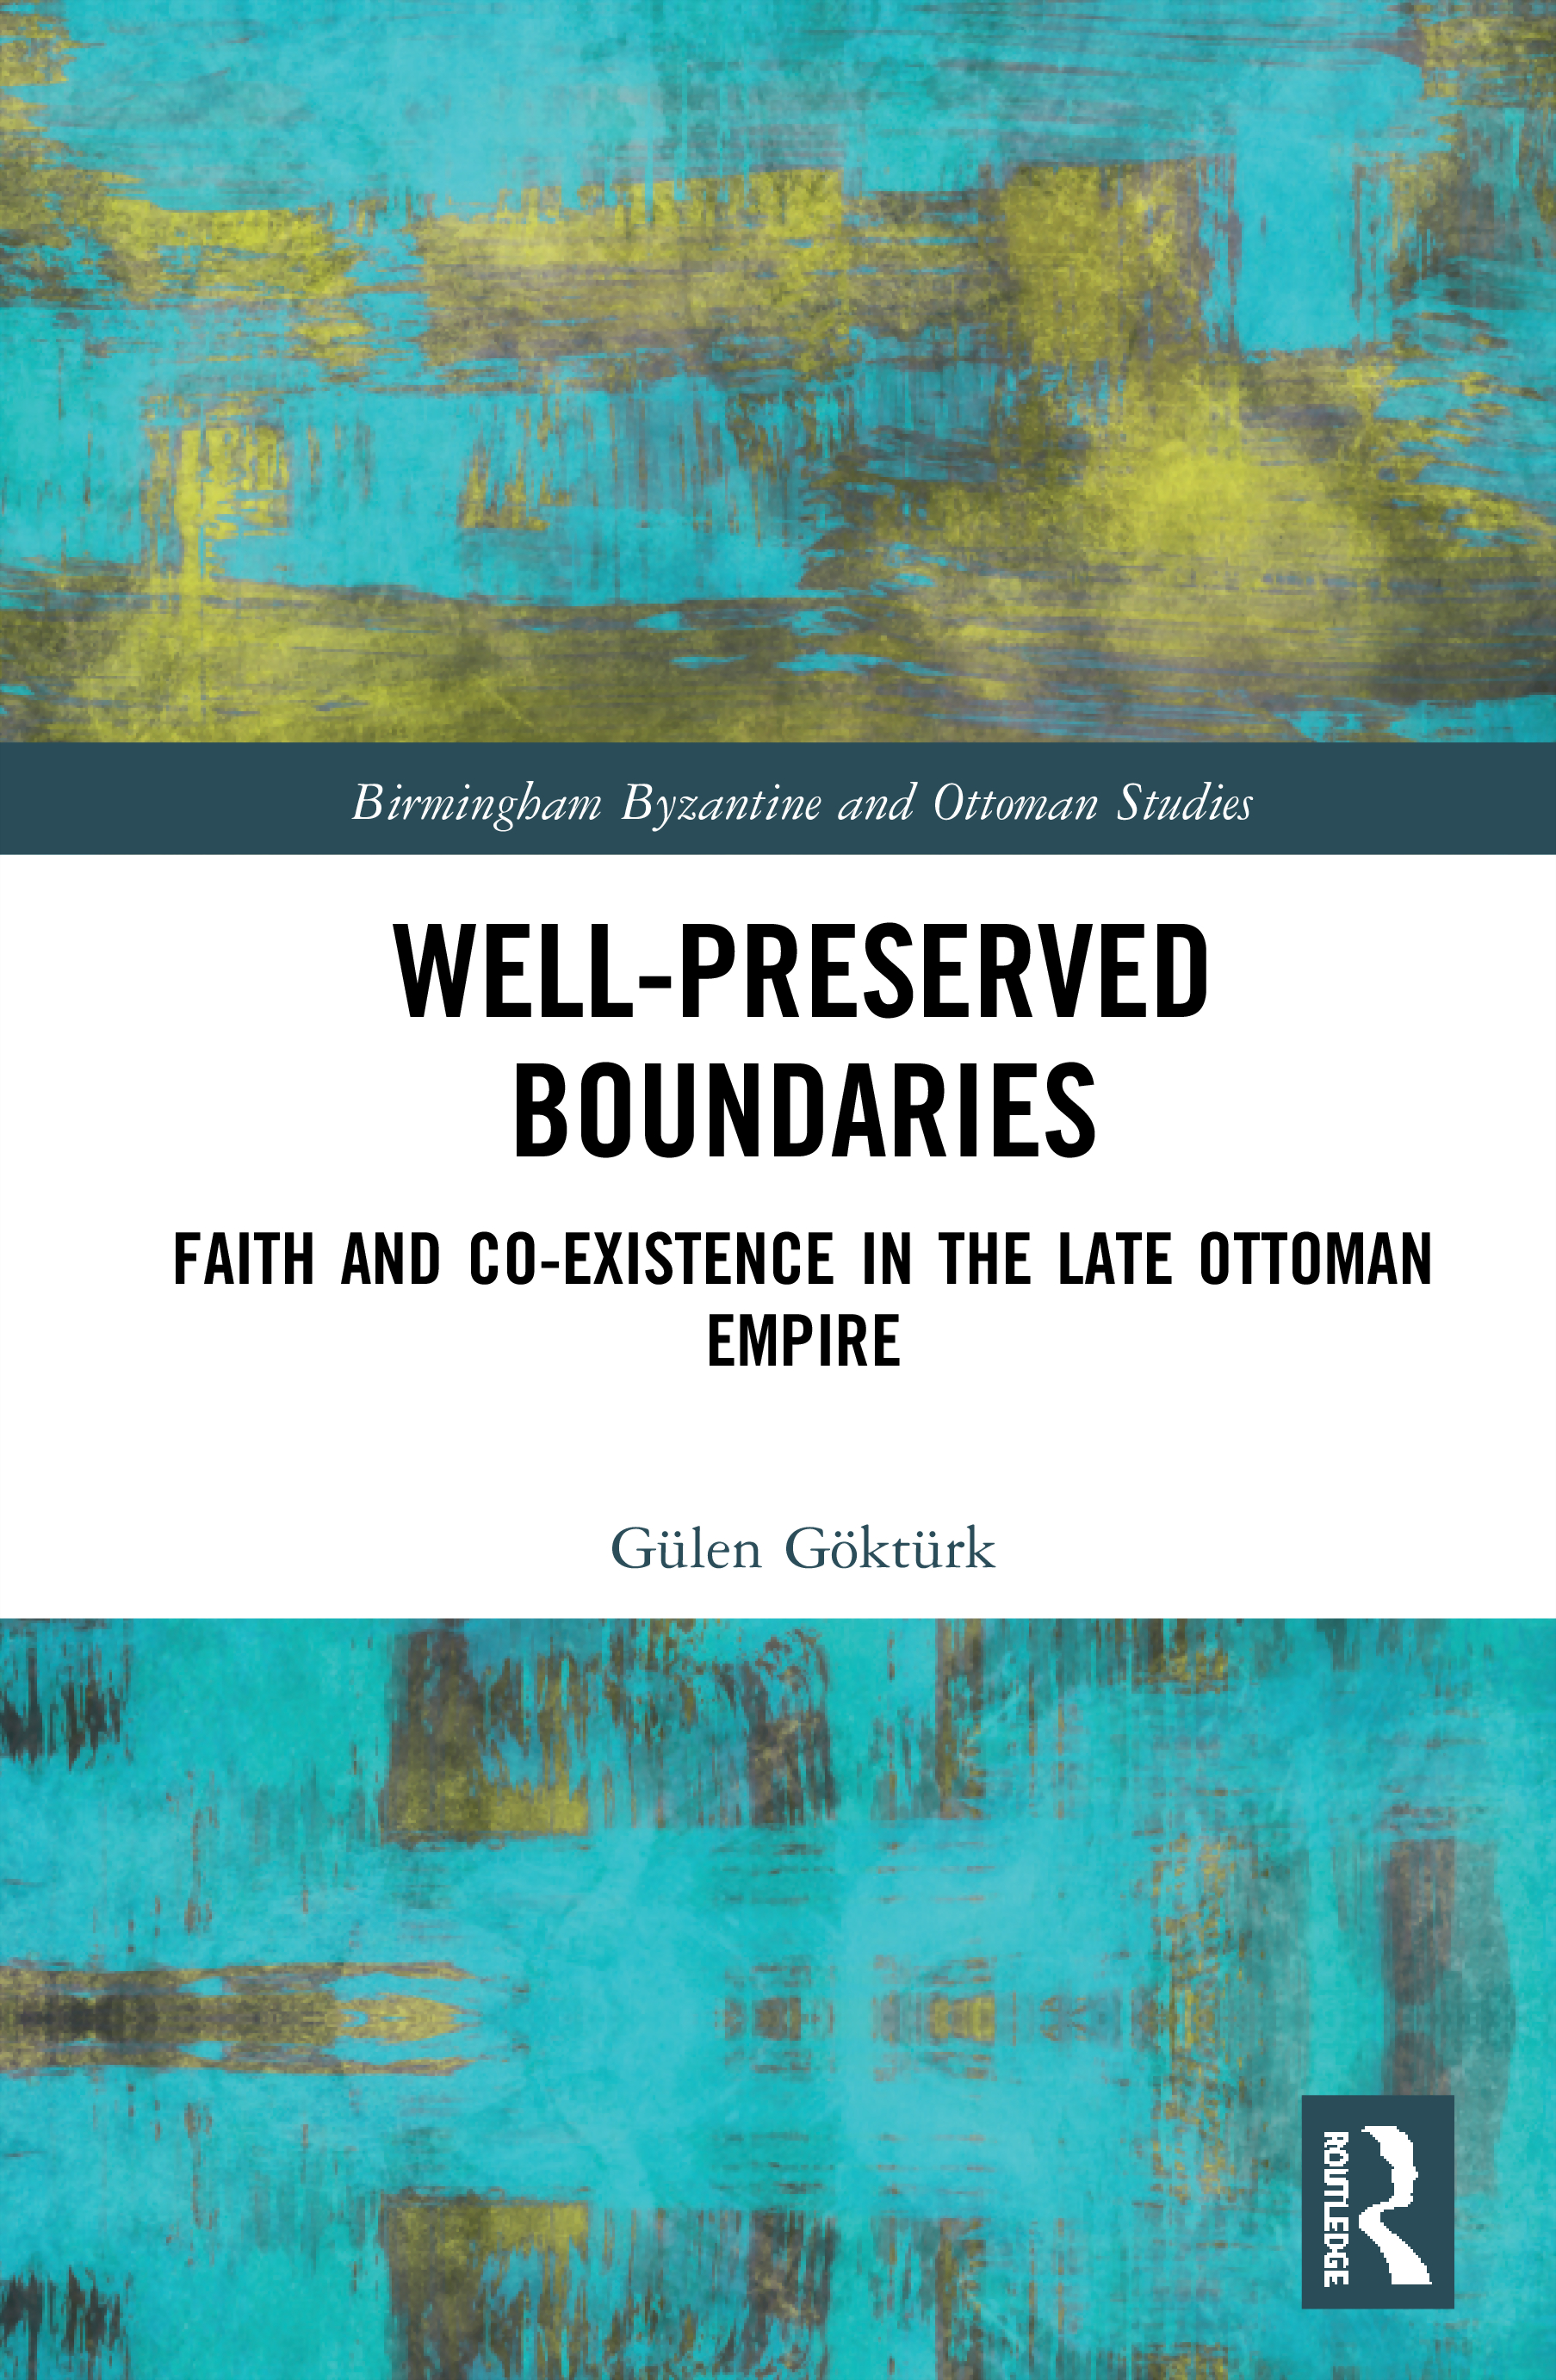 Well-Preserved Boundaries: Faith and Co-Existence in the Late Ottoman Empire, 1st Edition (Hardback) book cover